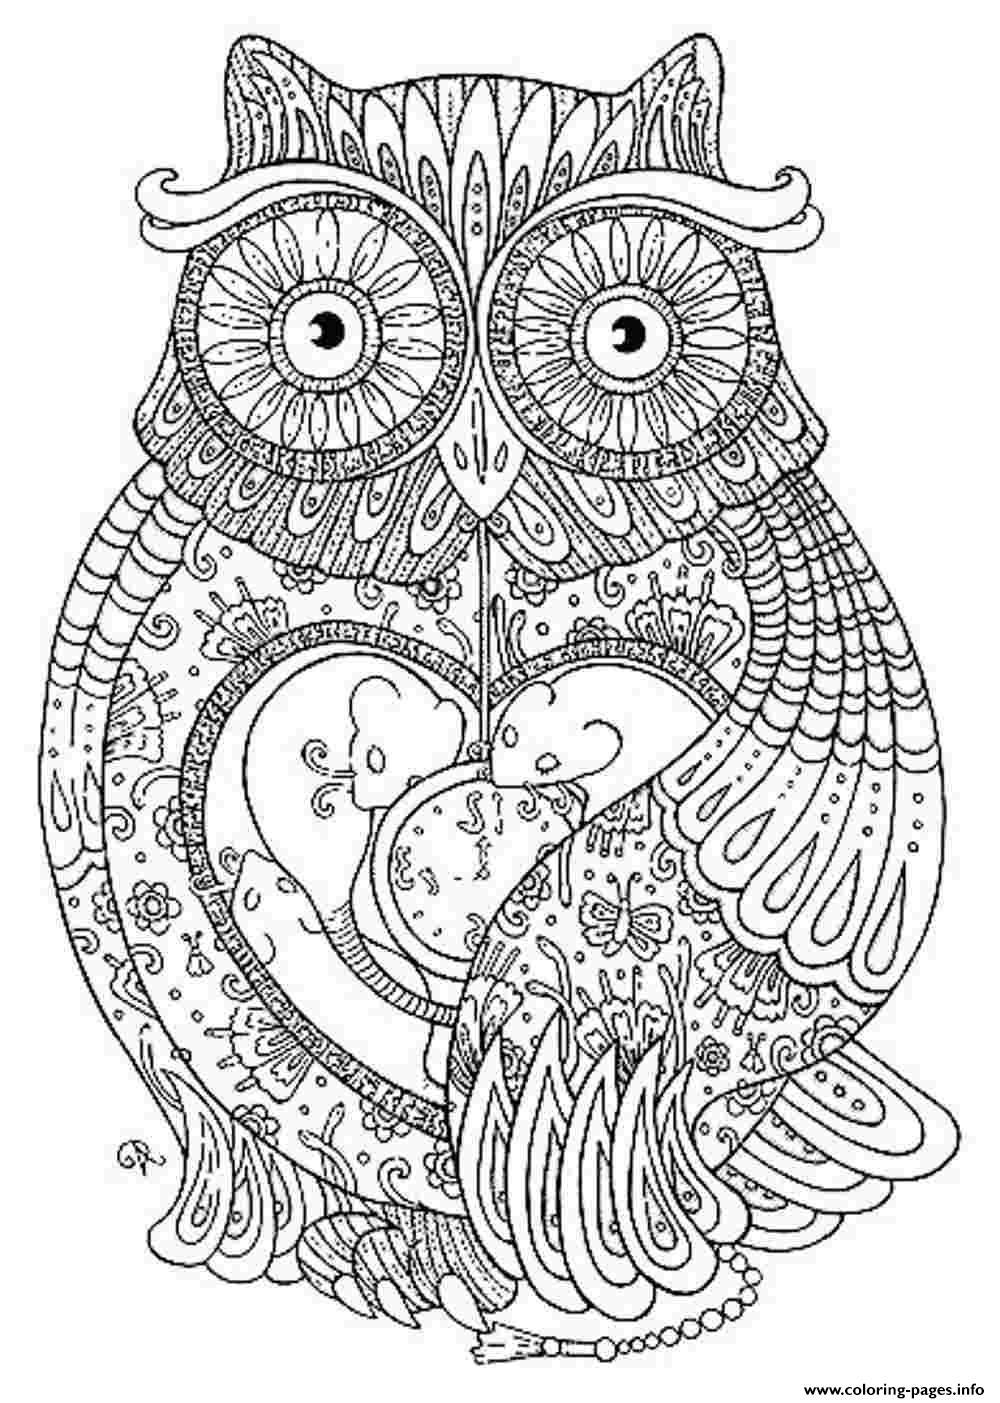 coloring pages for adults to print - animal coloring pages for adults printable coloring pages book 9142